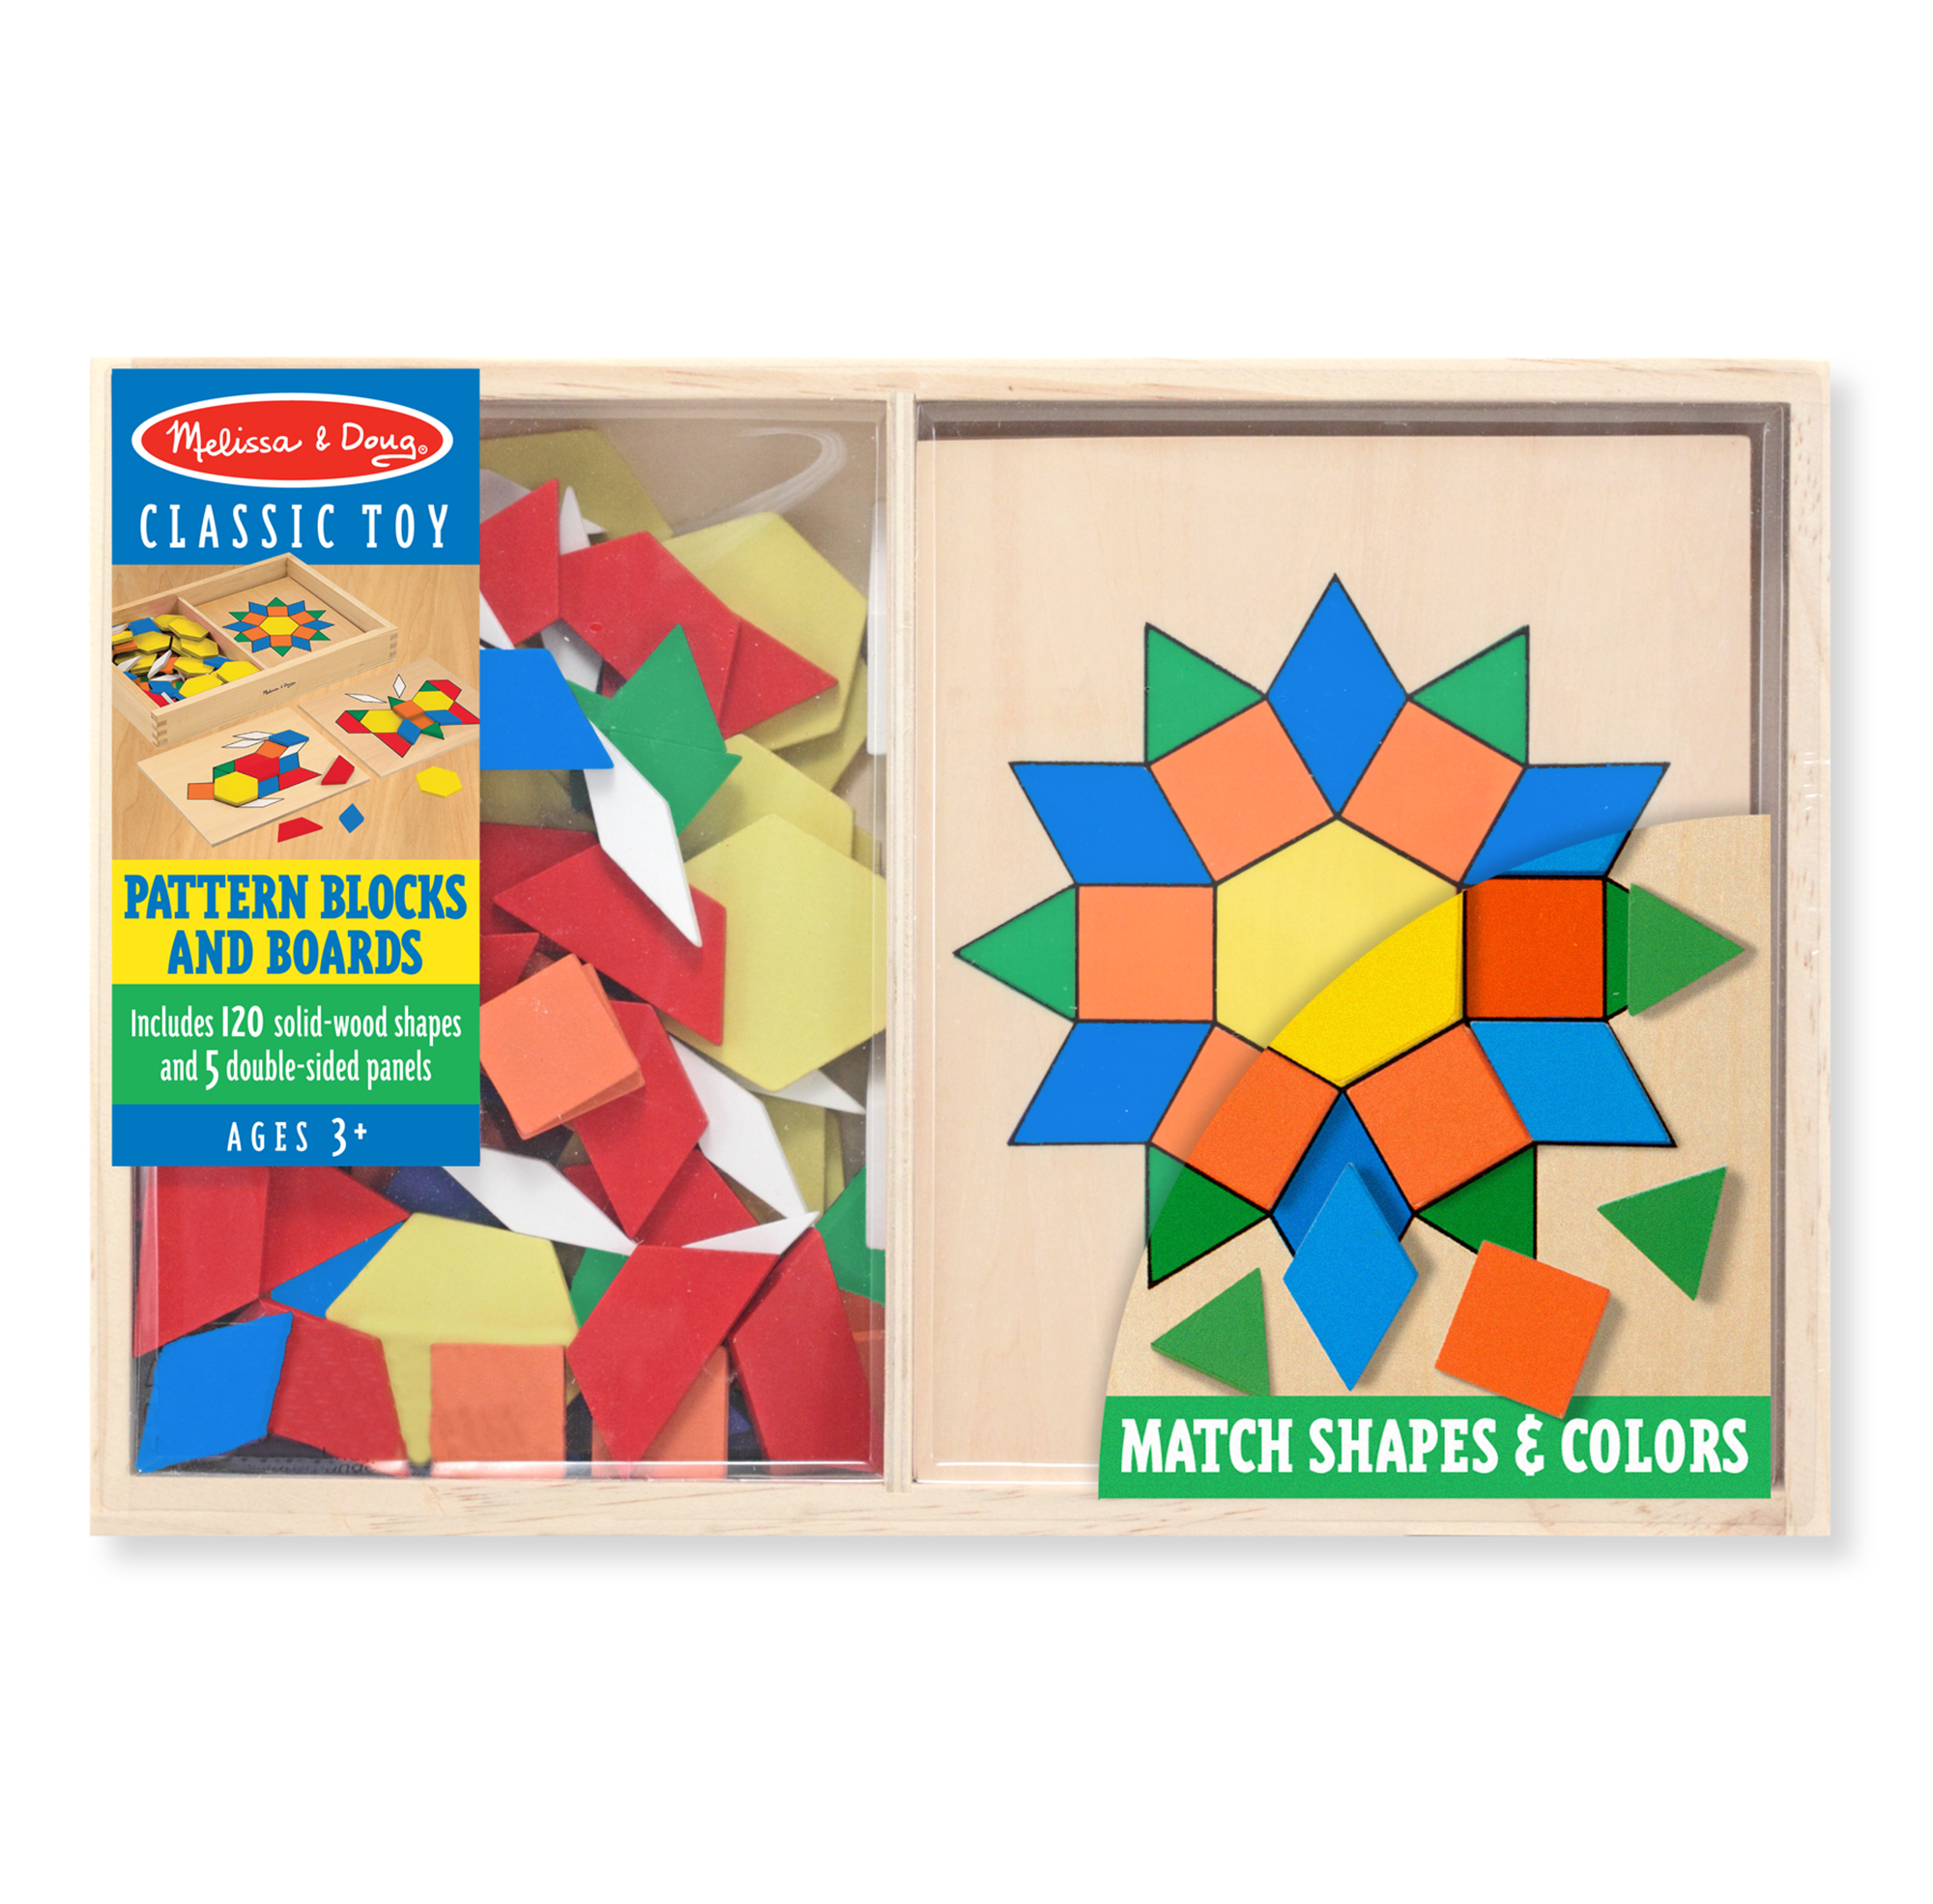 Melissa & Doug Pattern Blocks and Boards Classic Toy With 120 Solid Wood Shapes and 5... by Melissa & Doug